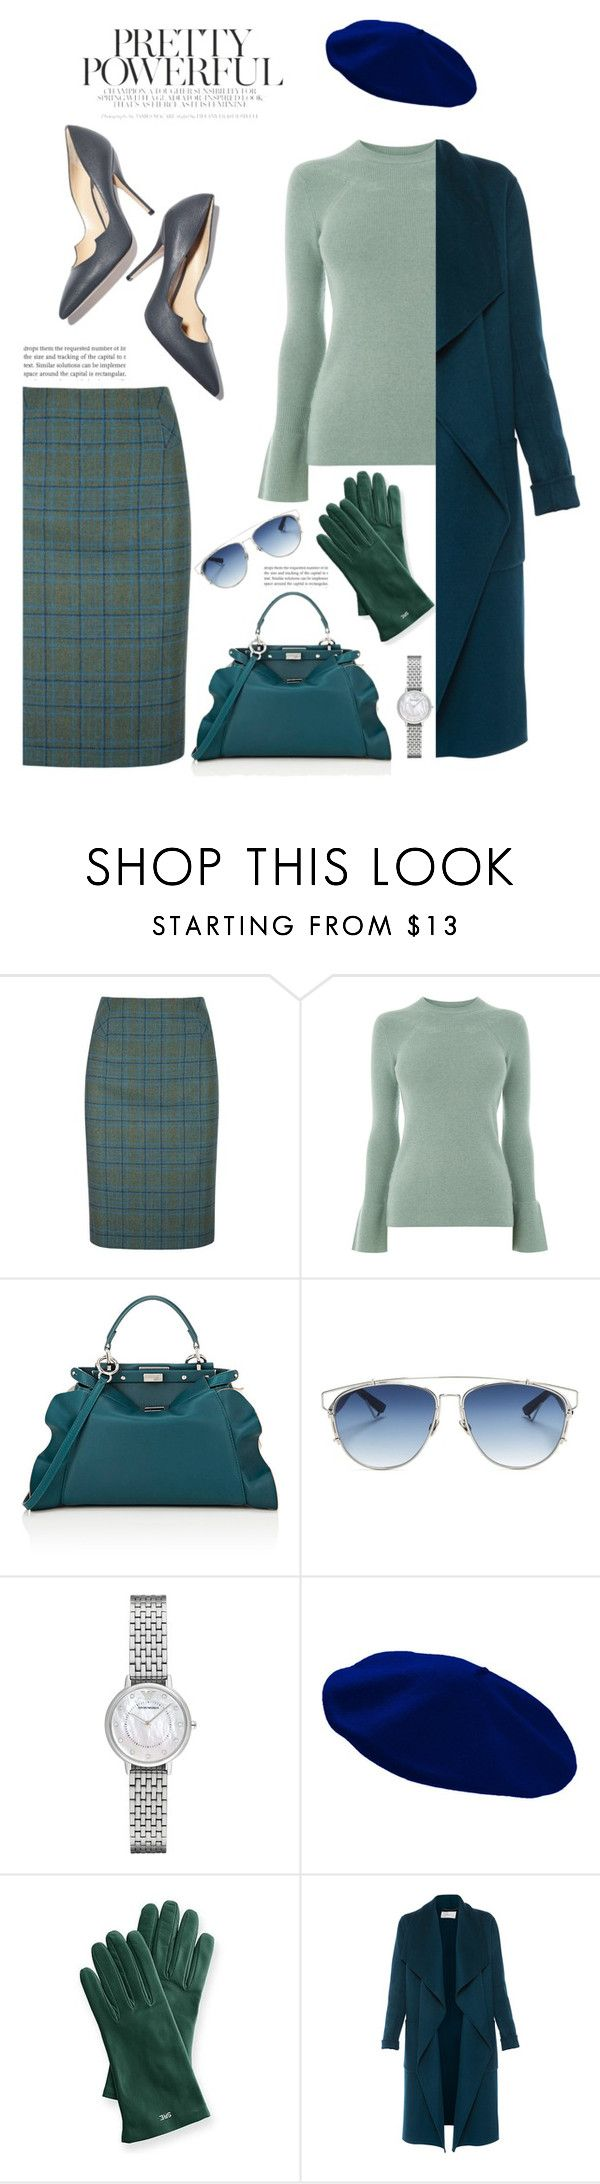 """Evergreen'"" by dianefantasy ❤ liked on Polyvore featuring DUBARRY, Warehouse, Fendi, Paul Andrew, Christian Dior, Emporio Armani, Mark & Graham, L.K.Bennett, Winter and polyvorecommunity"